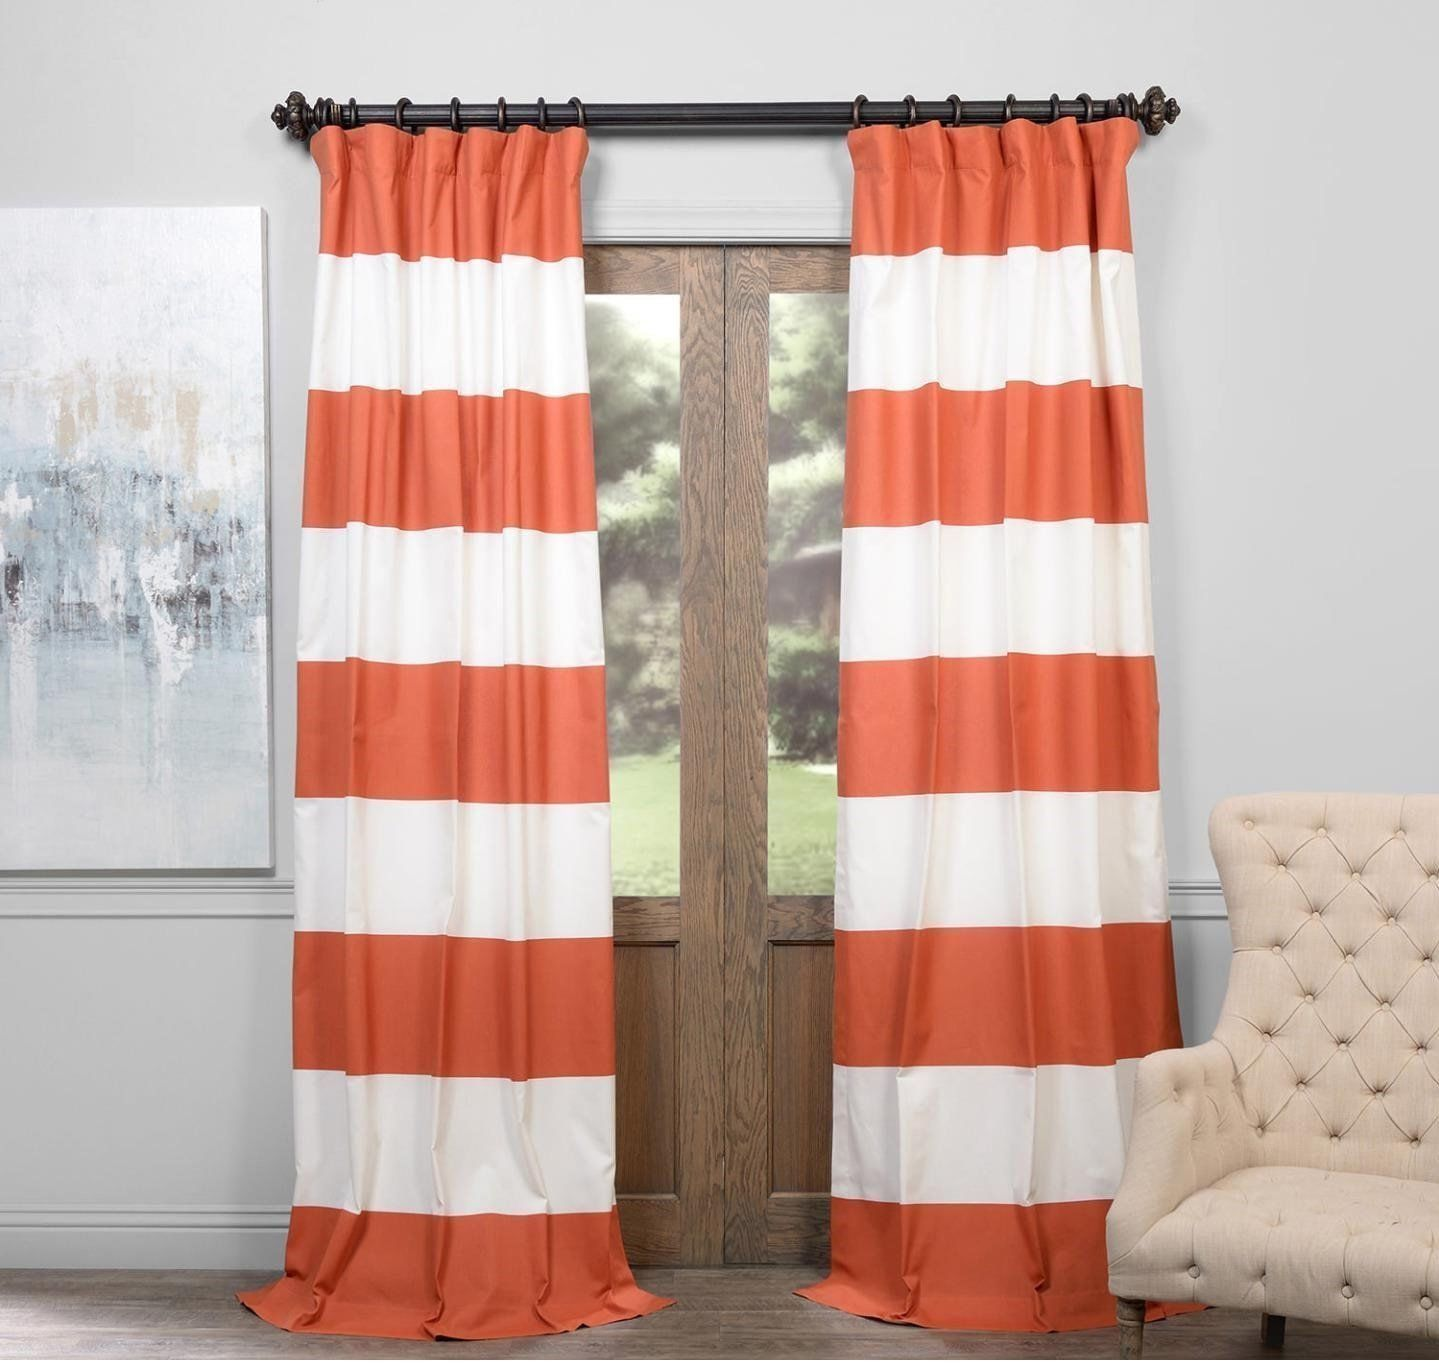 curtain decor curtains image best shower home drapes of nautical beauty sets